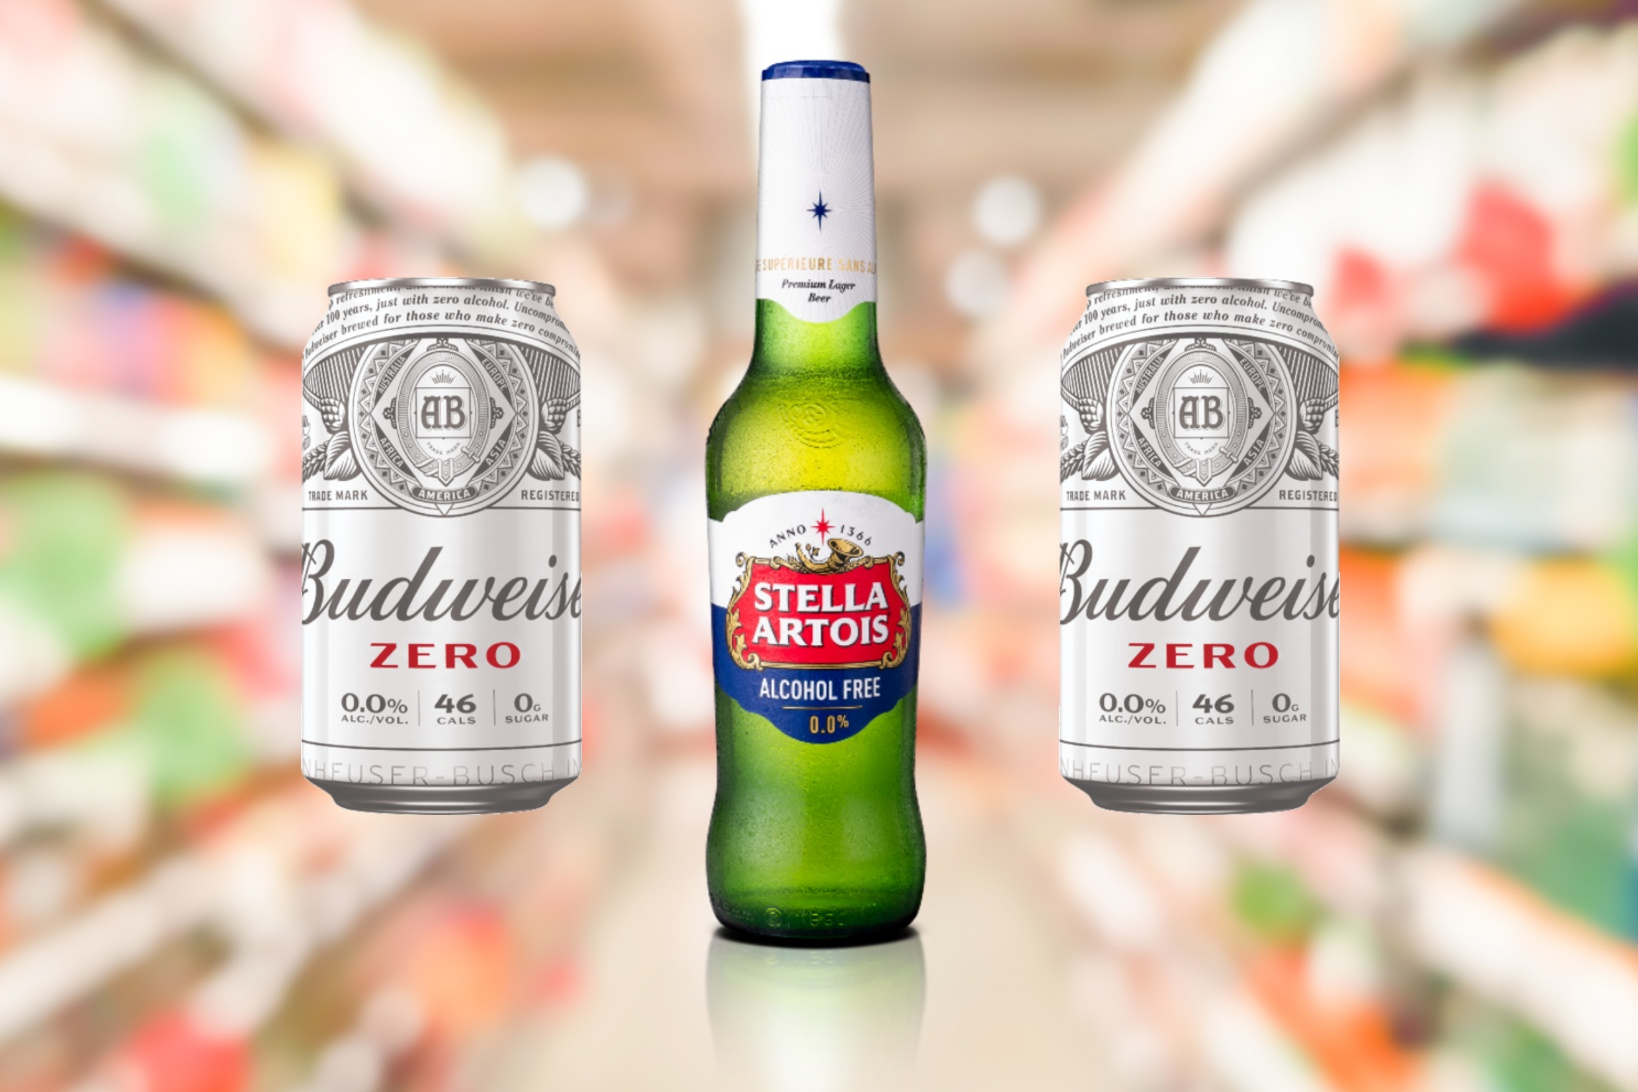 Budweiser Zero And Stella Artois Alcohol Free Launched photo